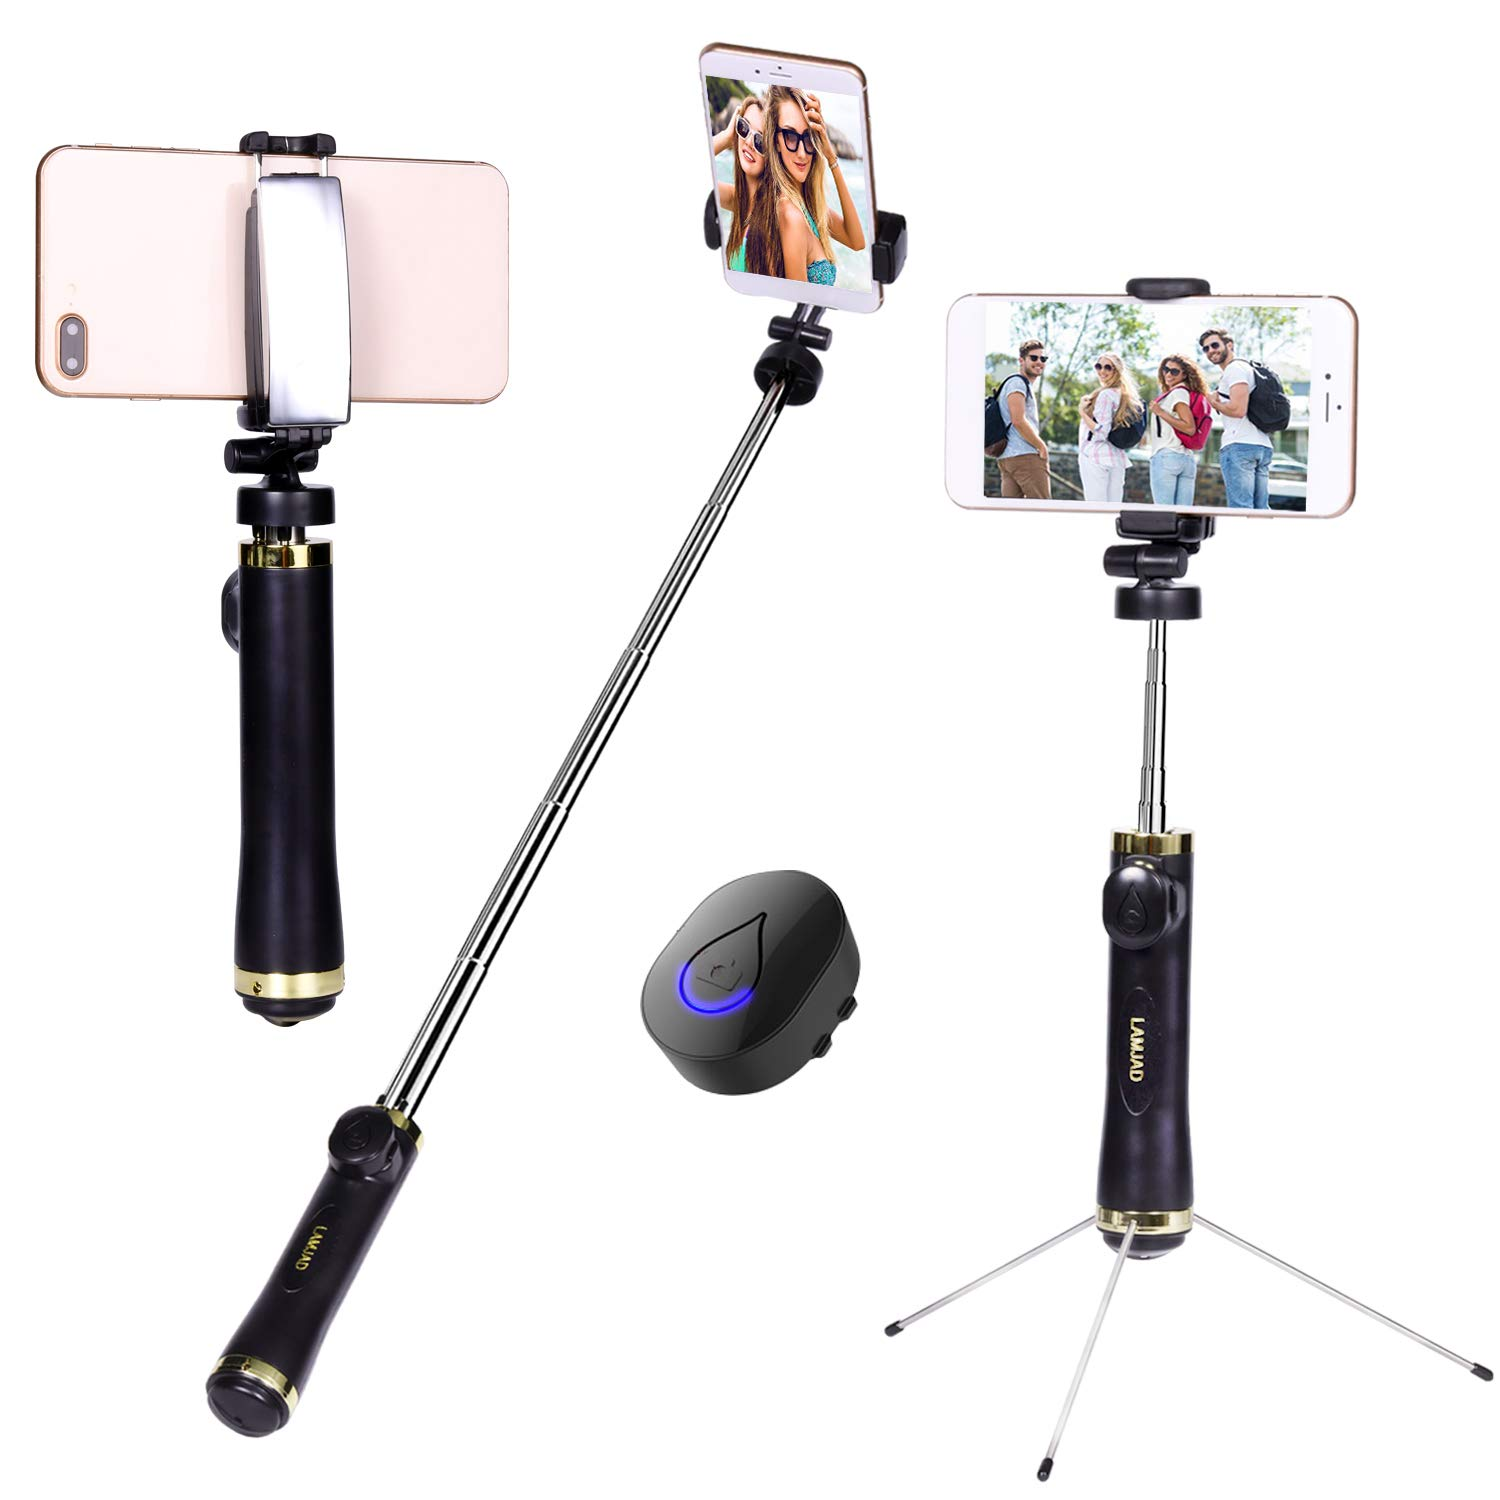 Selfie Stick, LAMJAD Extendable Selfie Stick Tripod with Wireless Remote and Tripod Stand Selfie Stick for iPhone XS/XSmax/XR/X/8/8P/7/7P/6s/6/5, Galaxy S9/8/7/6/Note, Android Smartphone by LAMJAD